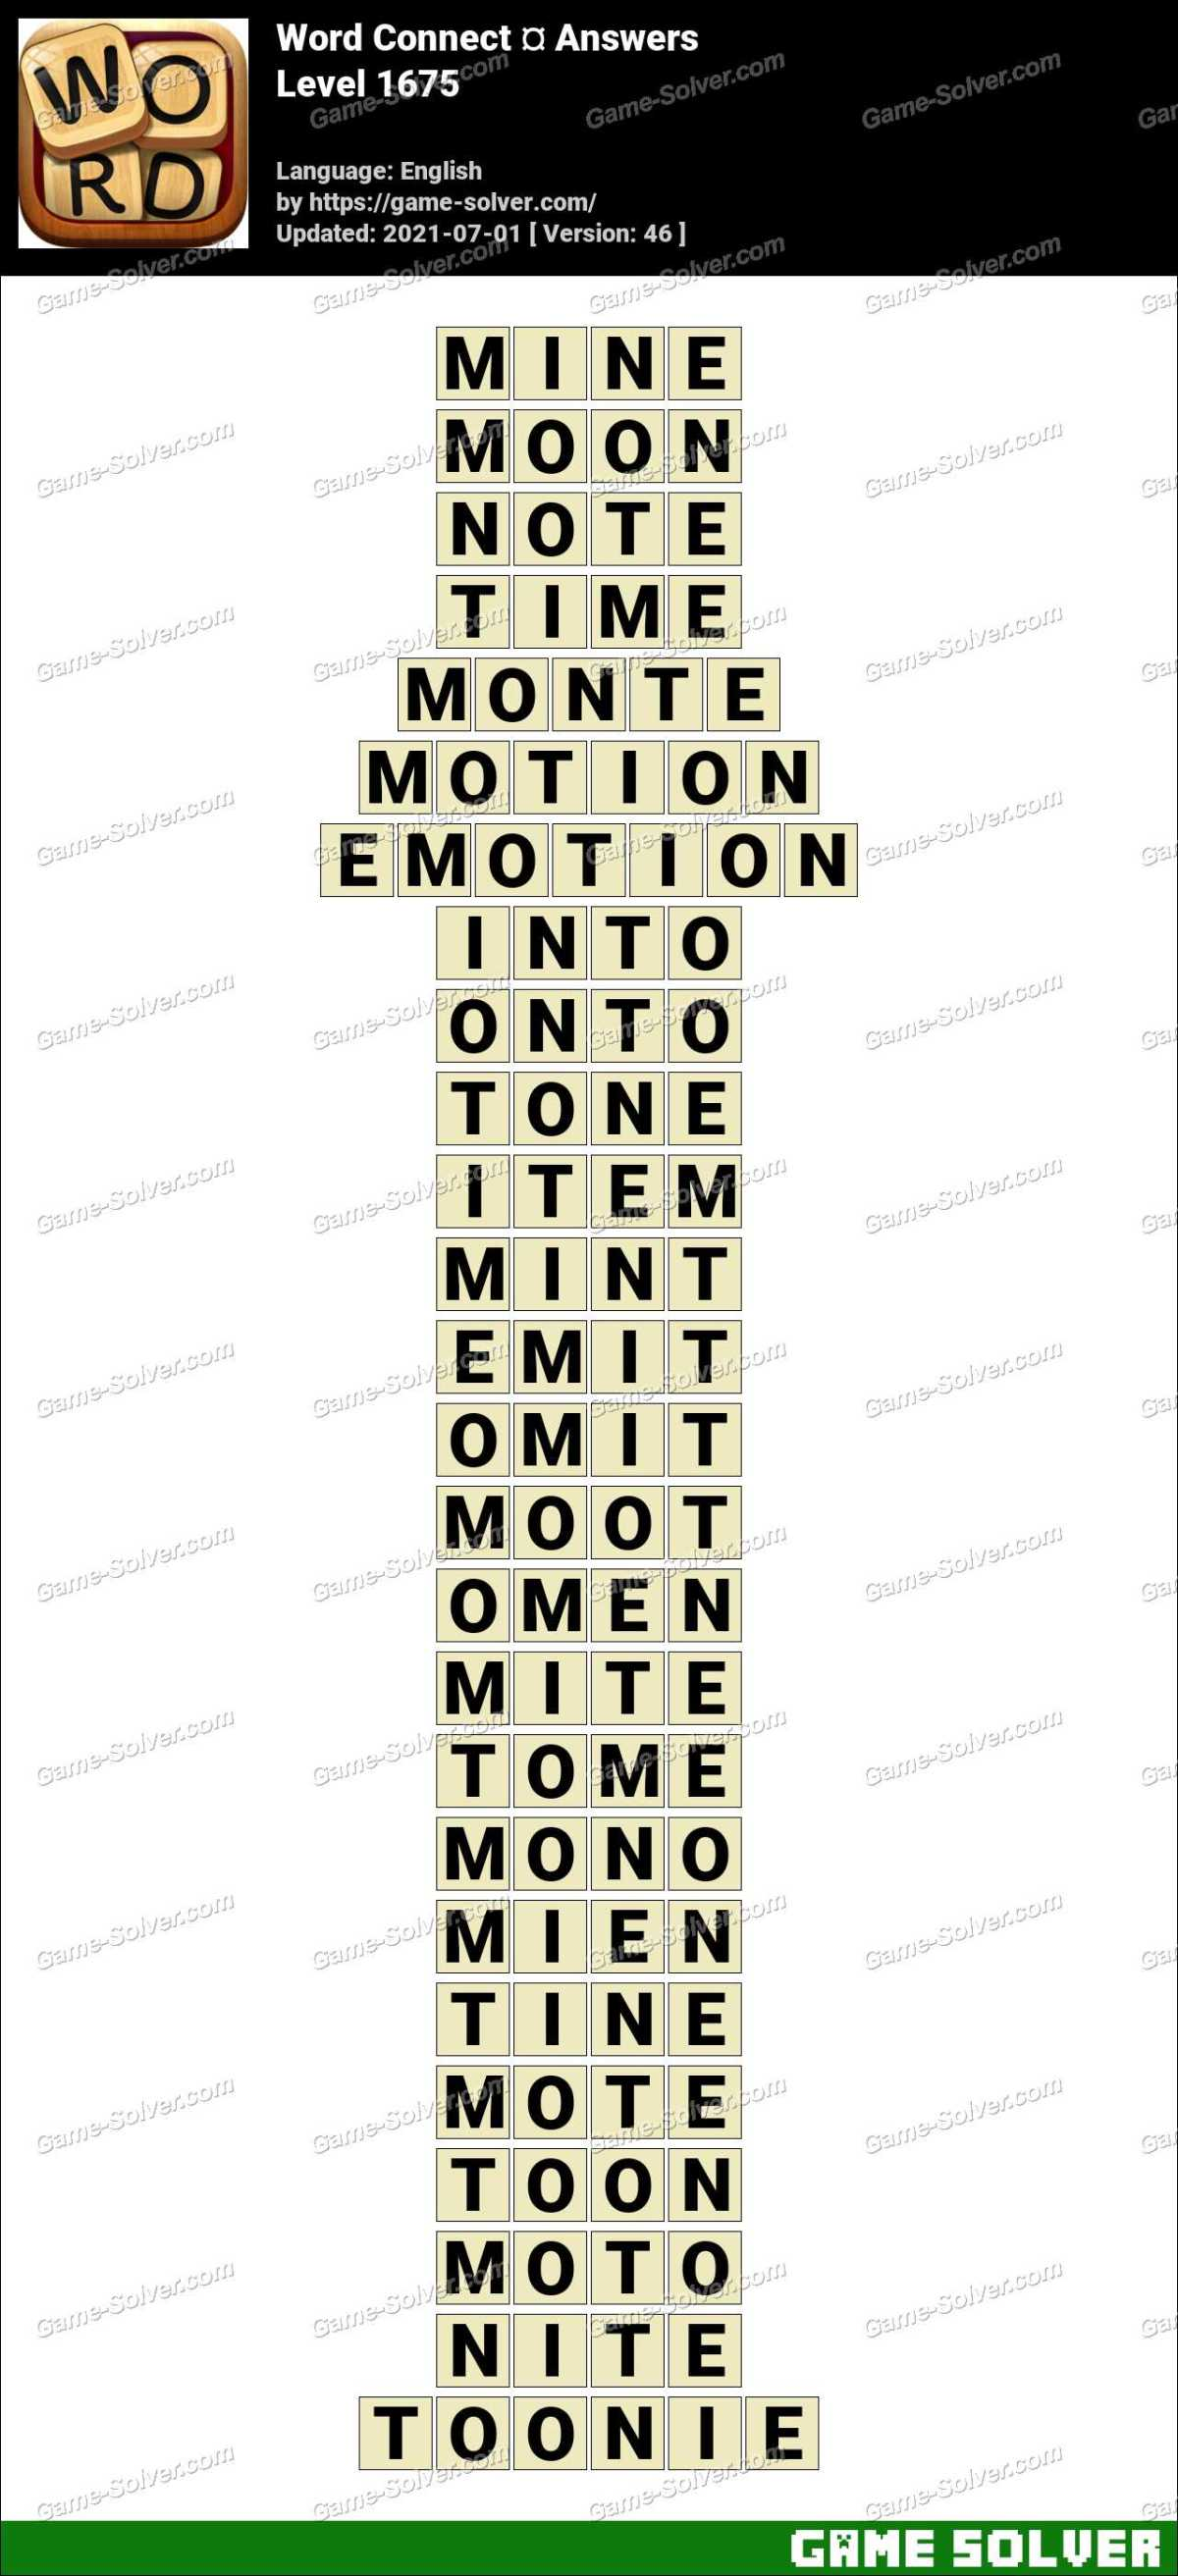 Word Connect Level 1675 Answers